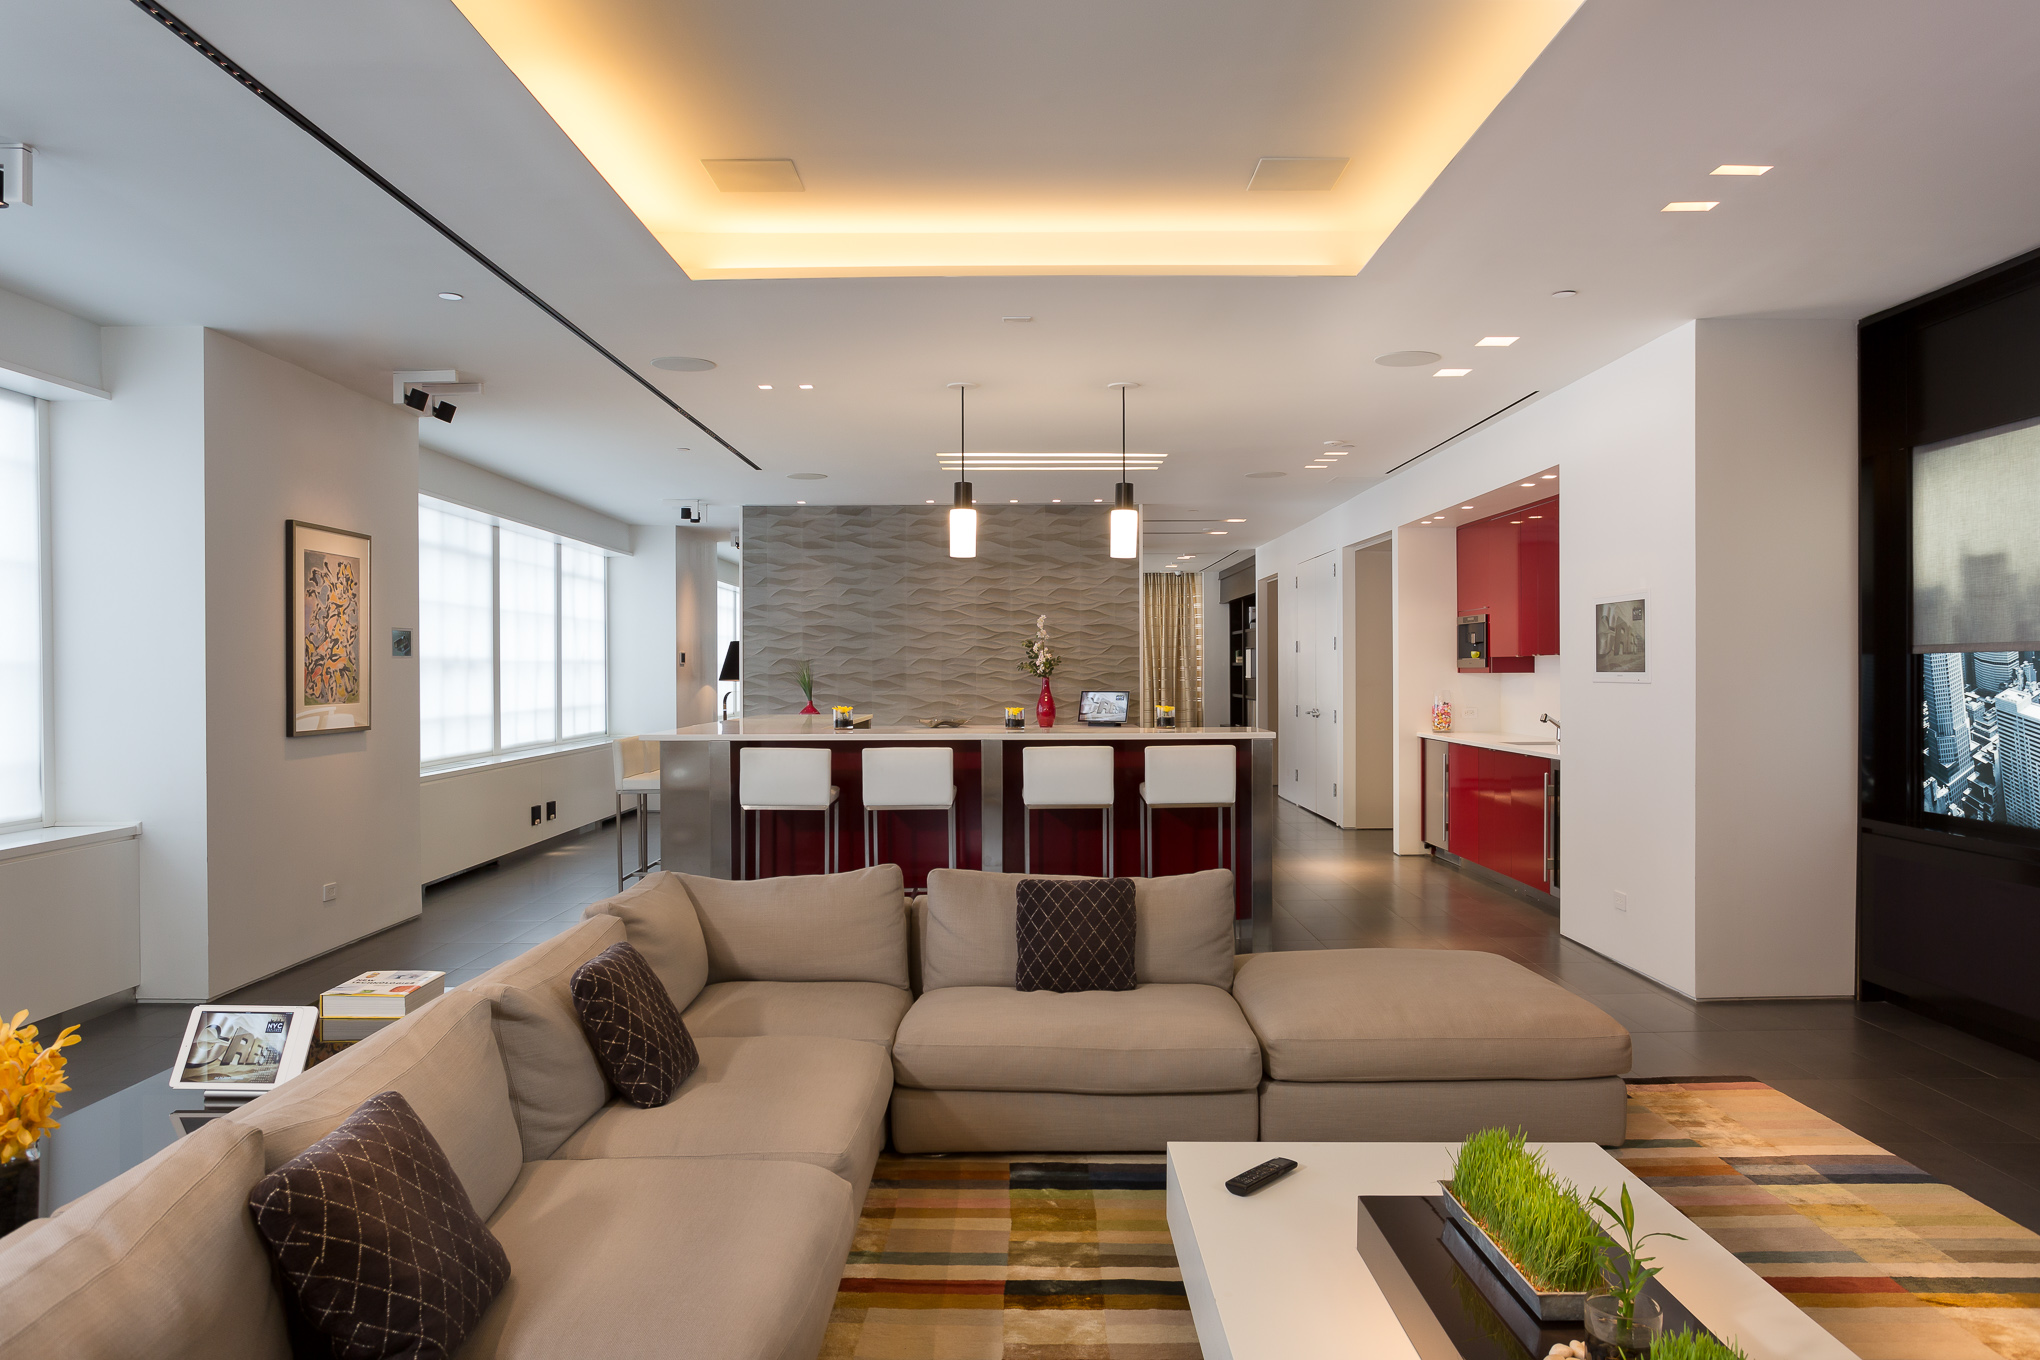 Crestron Showroom - New York City